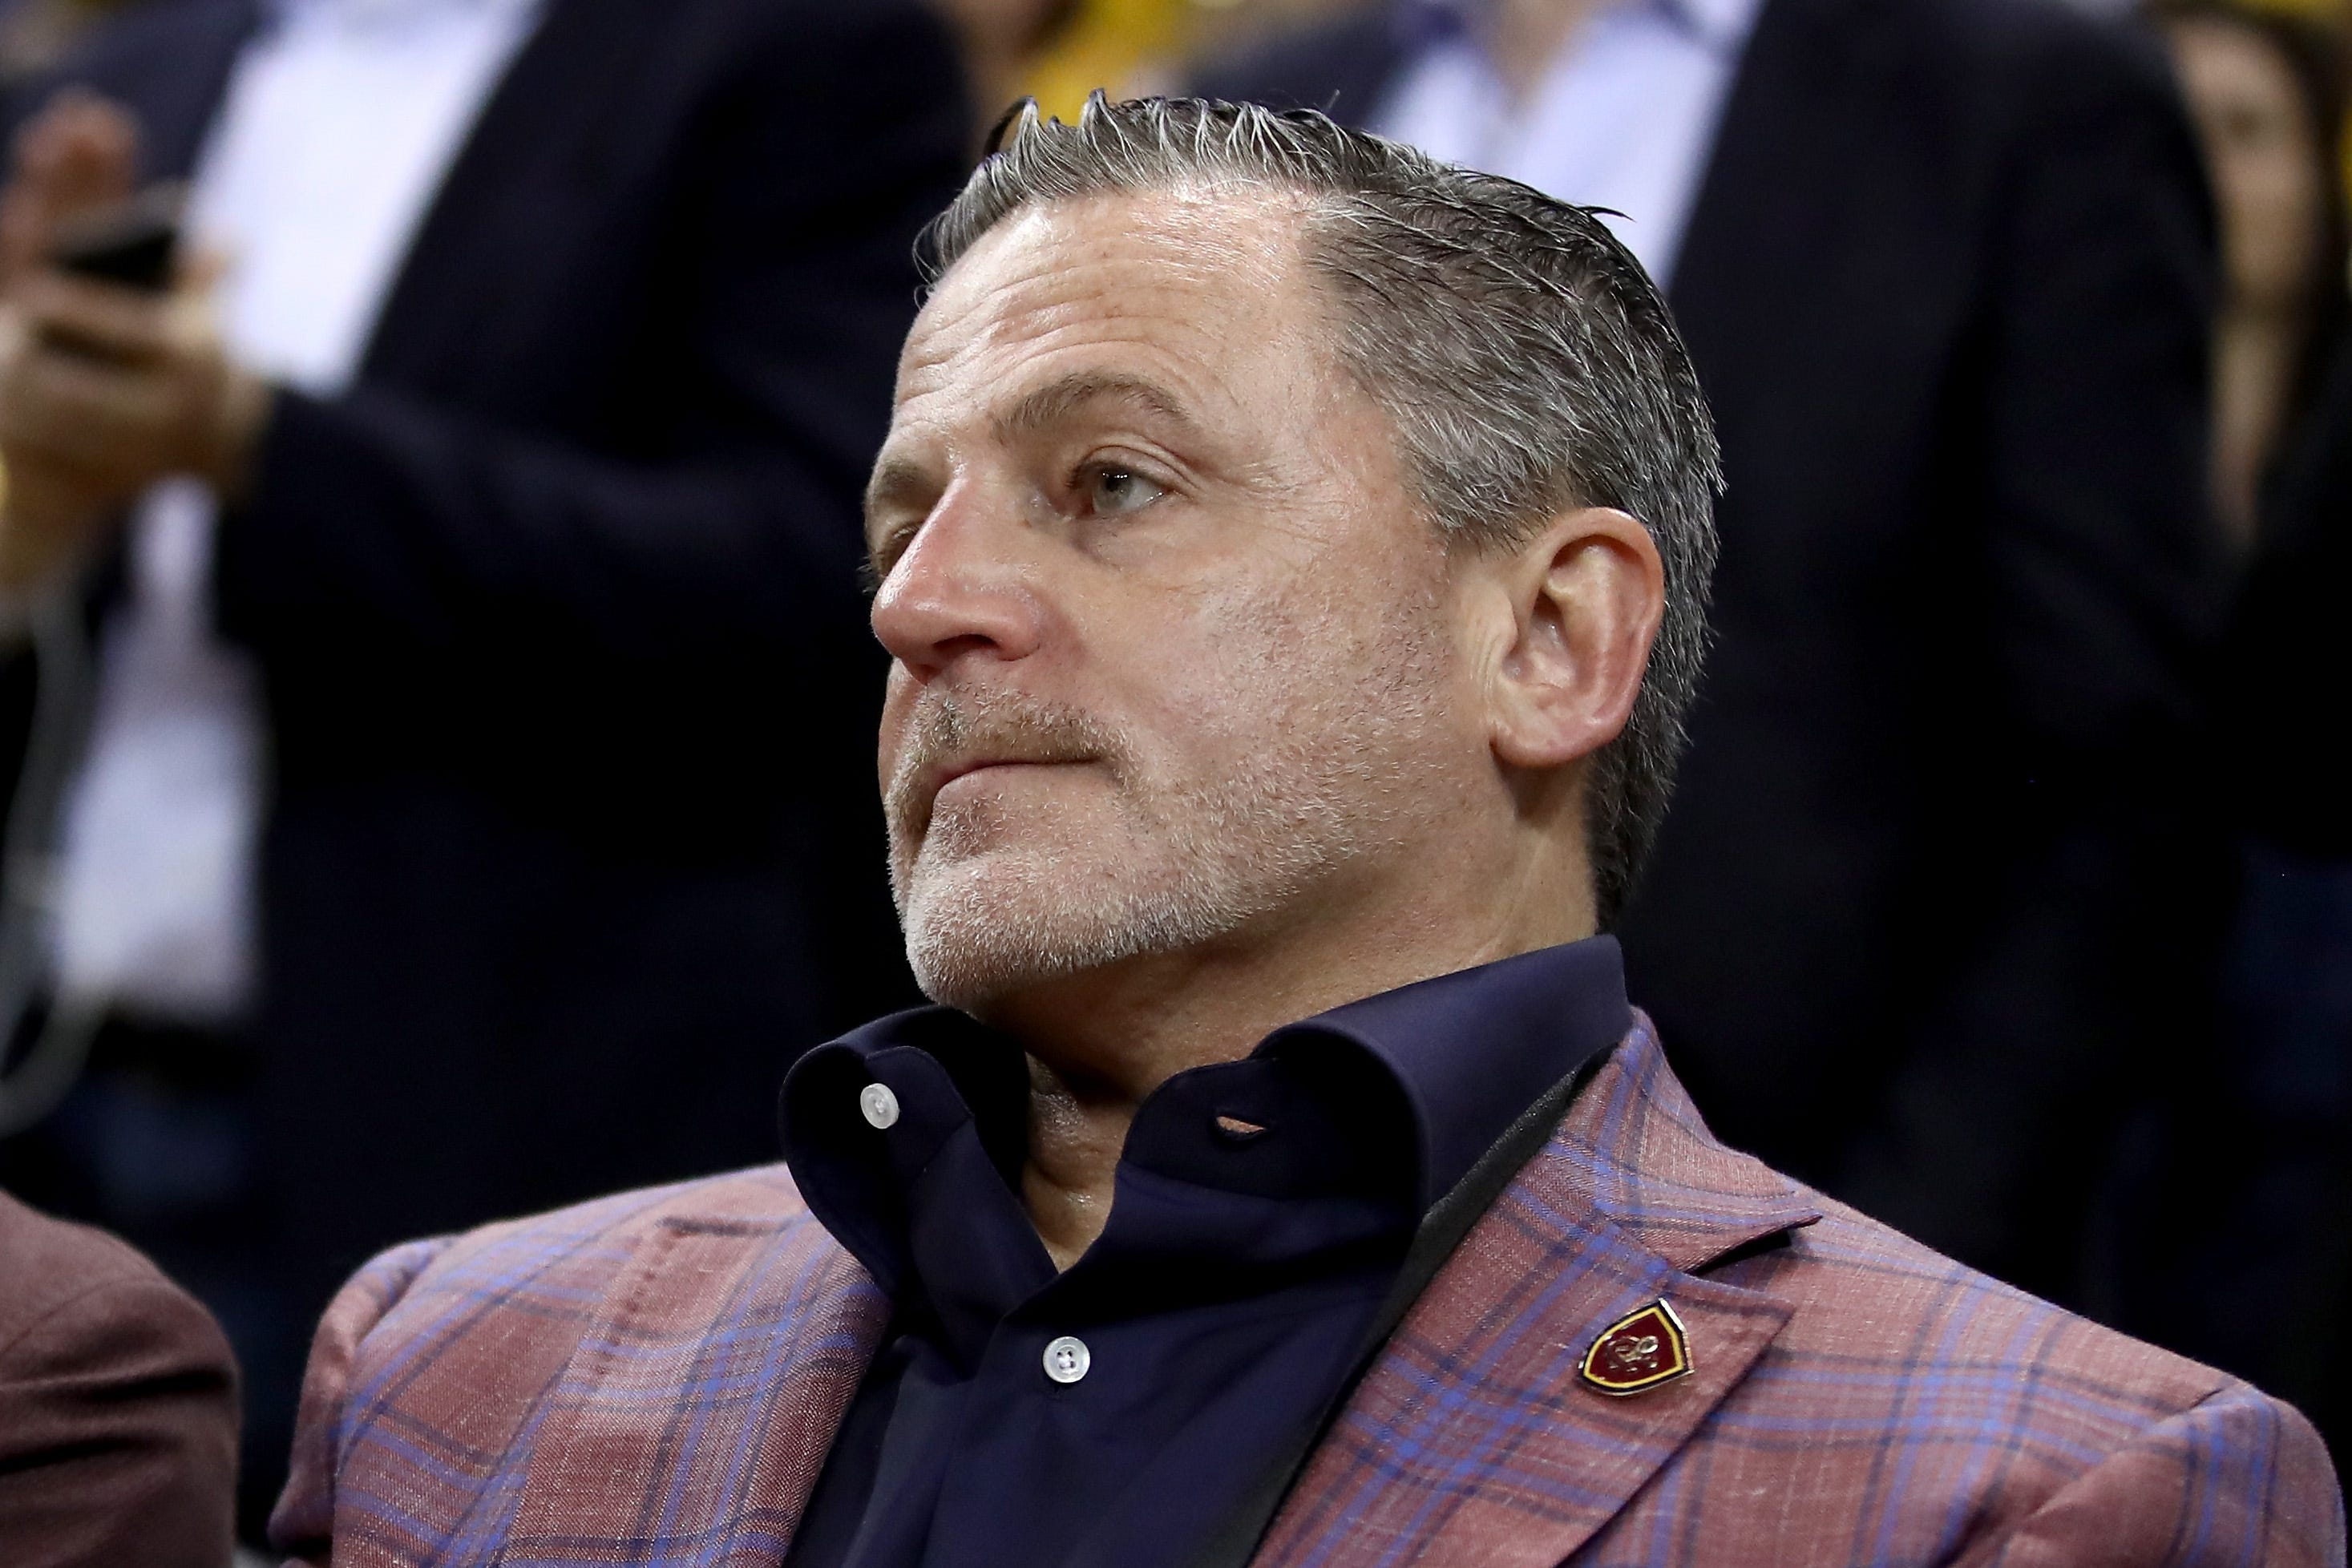 Cavs owner disses Pacers for Paul George trade